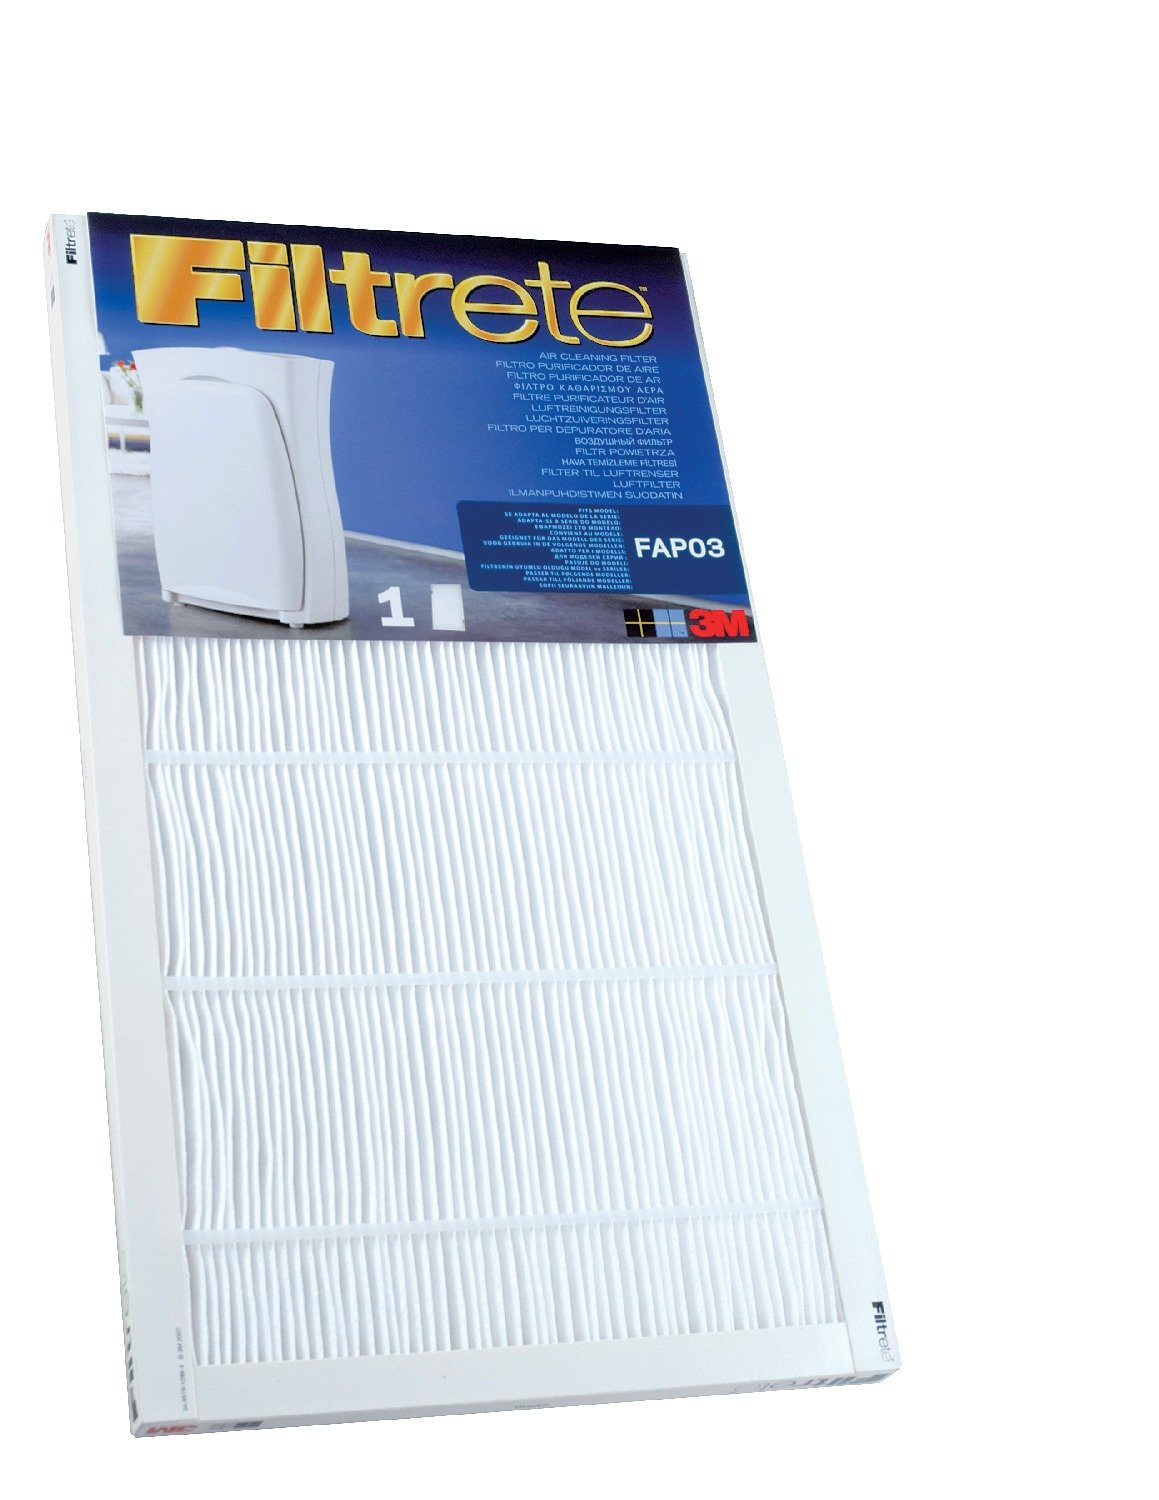 Filtrete FAPF01/02 Ultra Clean Small Air Purifier Replacement Filter - For Filtrete Air Purifier Model: FAP01 and FAP02-1 Filter 3M XN004210367